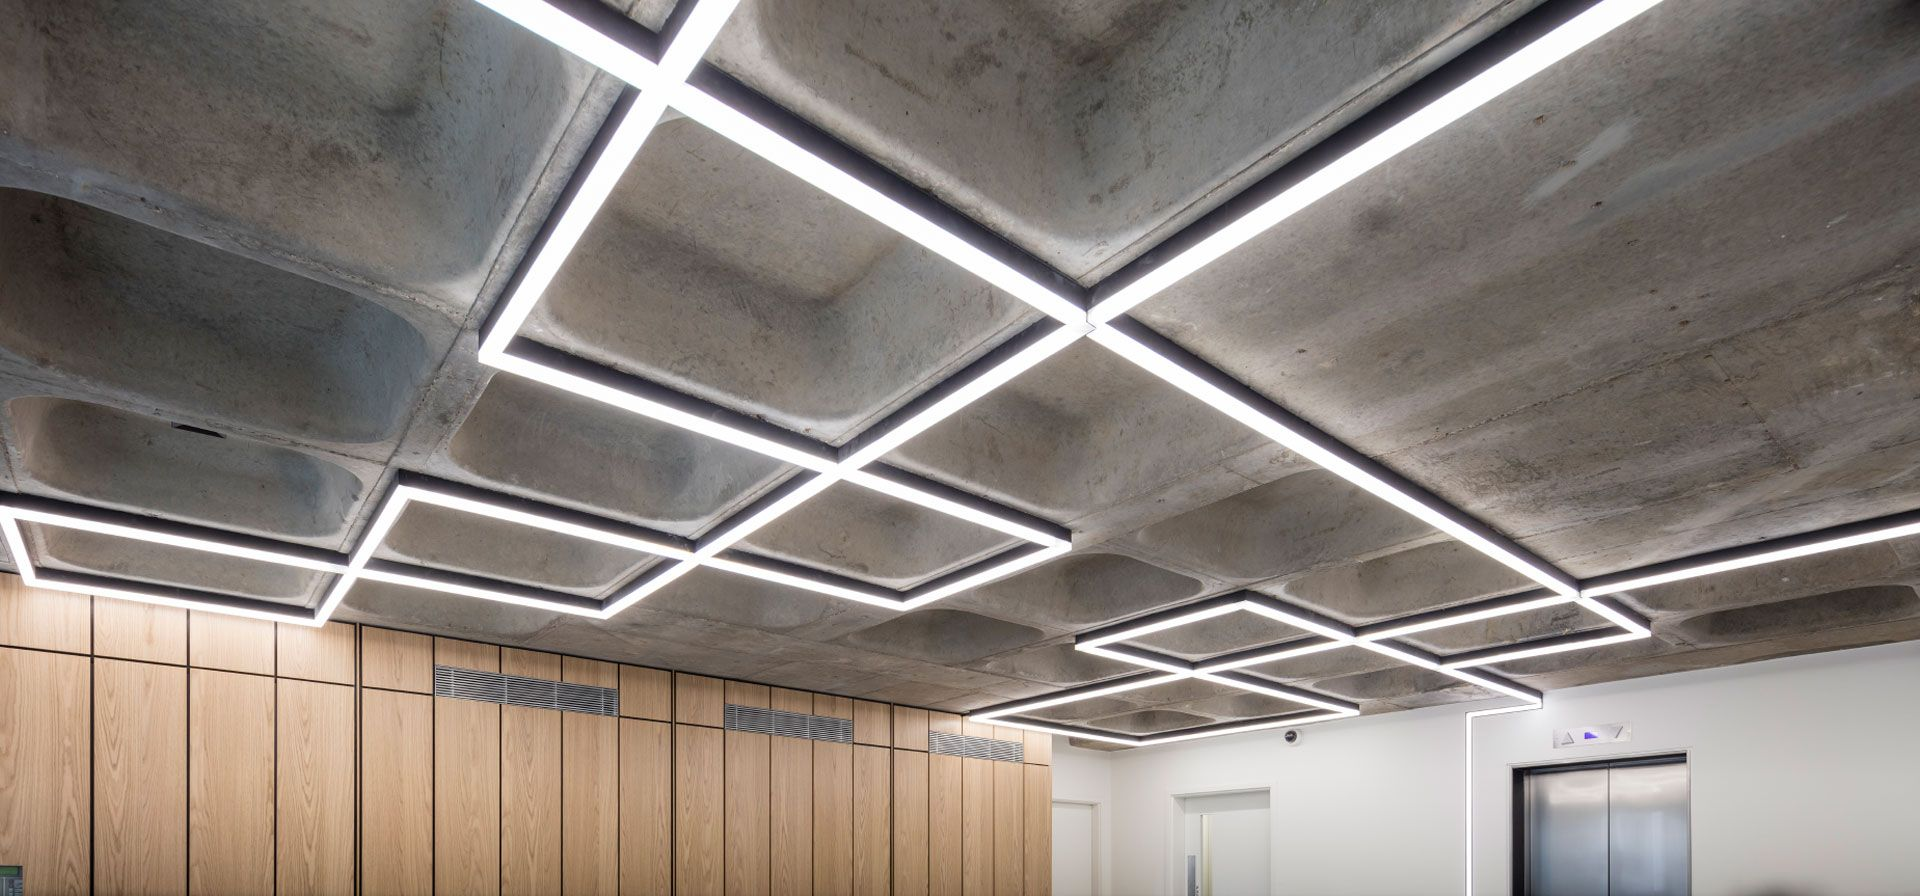 Image Result For Concrete Coffered Ceiling Coffered Ceiling Lighting Coffered Ceiling Ceiling Lights